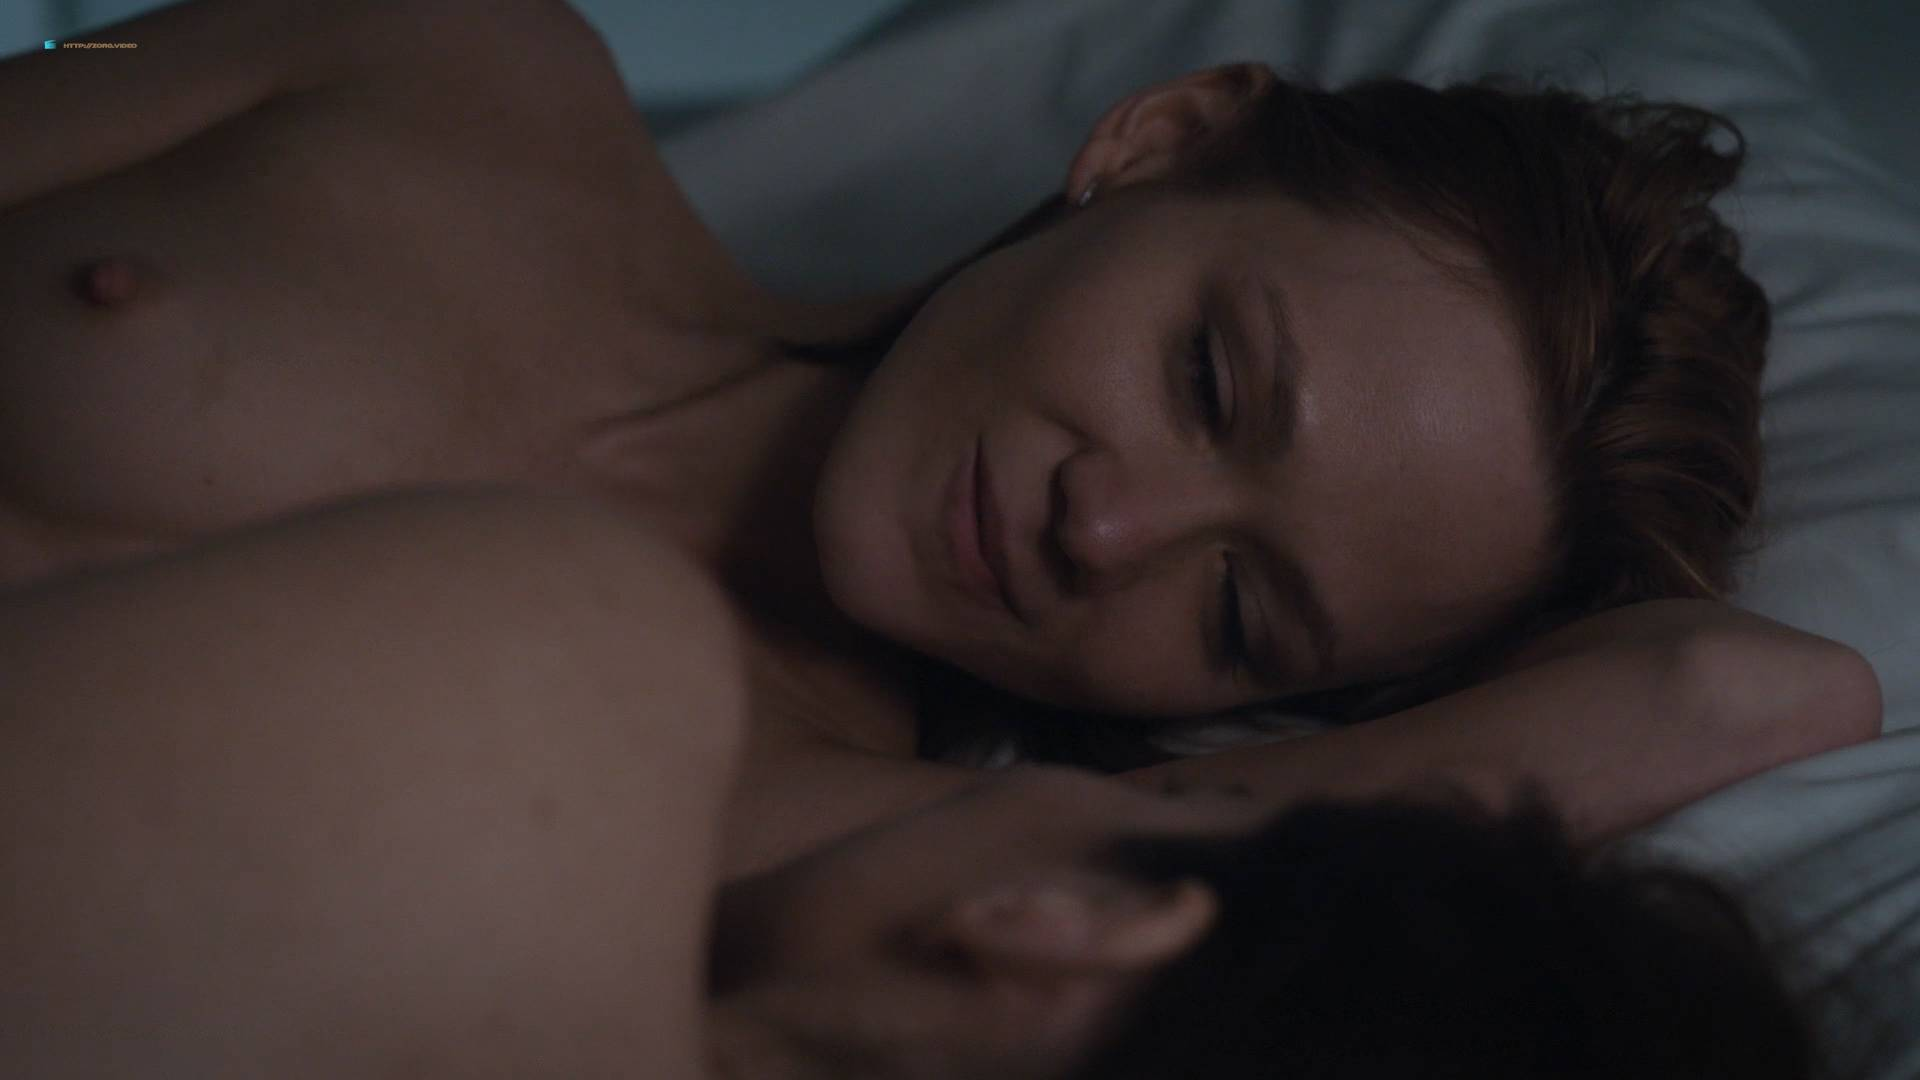 Anna-Friel-nude-and-lesbian-sex-with-Louisa-Krause-The-Girlfriend-Experience-2017-s2e3-HD-1080p-Web-13.jpg